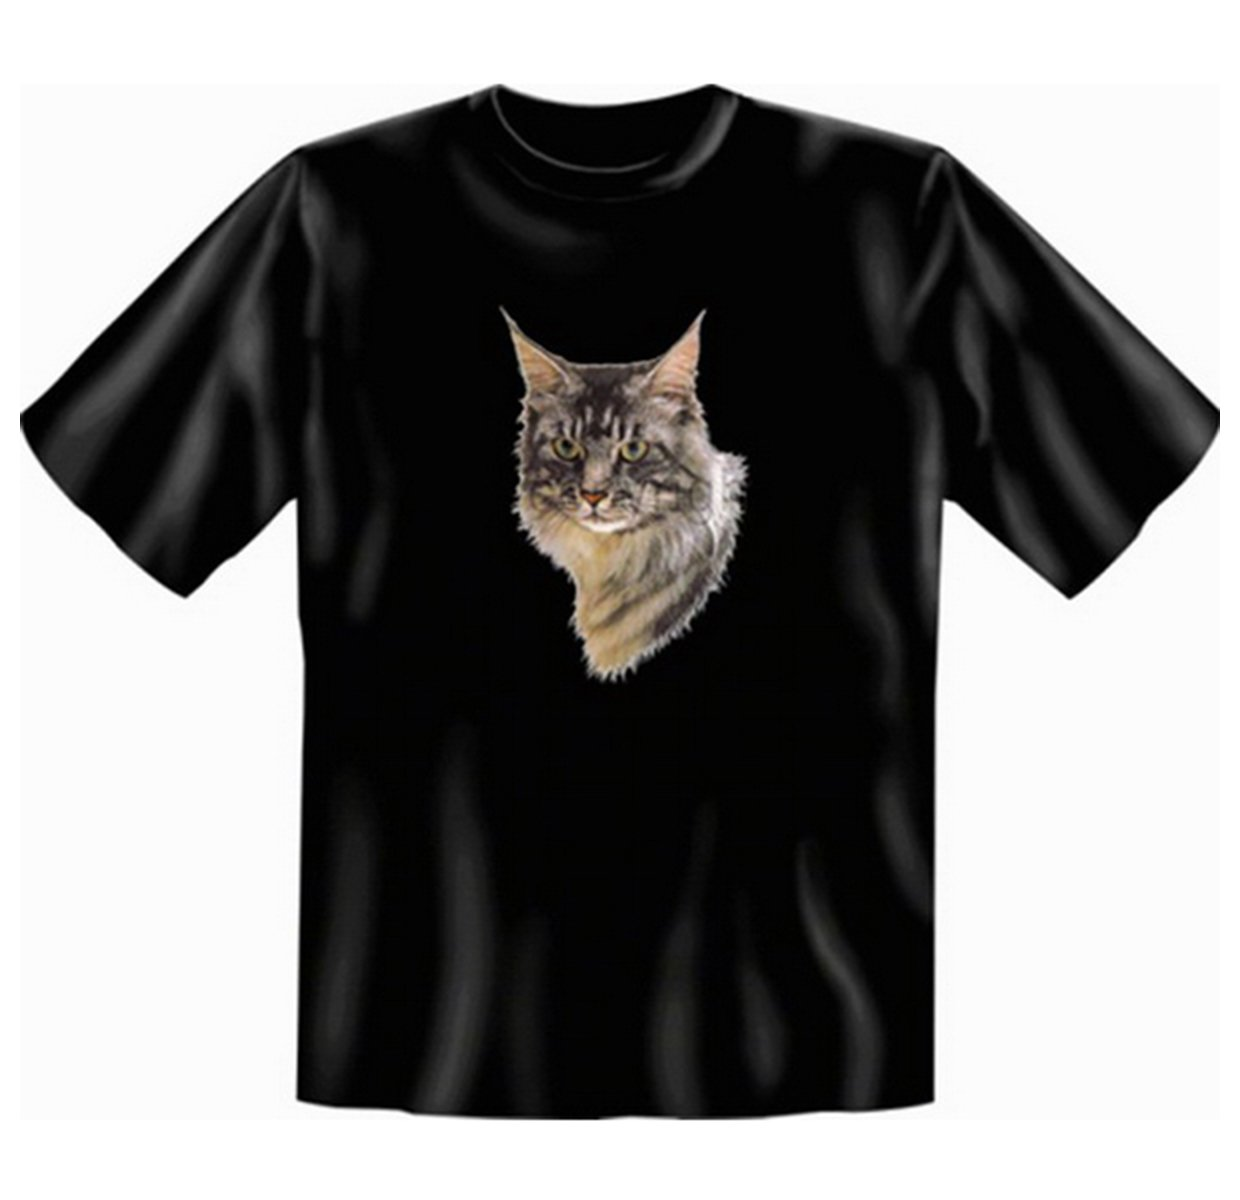 Cat Maine Coon Kittens T-Shirt Remote Control Black